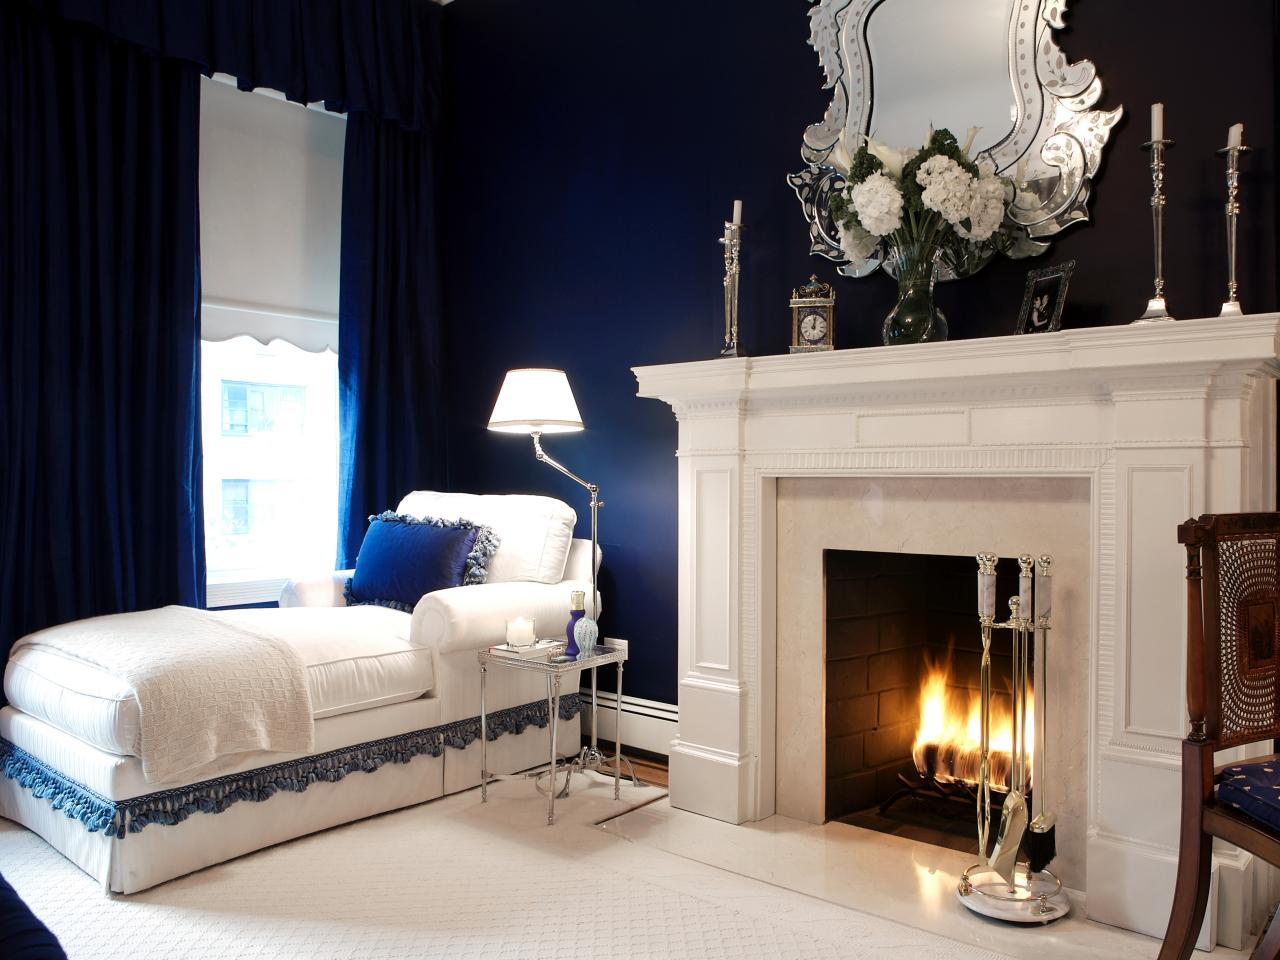 How to create a hotel style master bedroom bedrooms bedroom decorating ideas hgtv Master bedroom with fireplace images